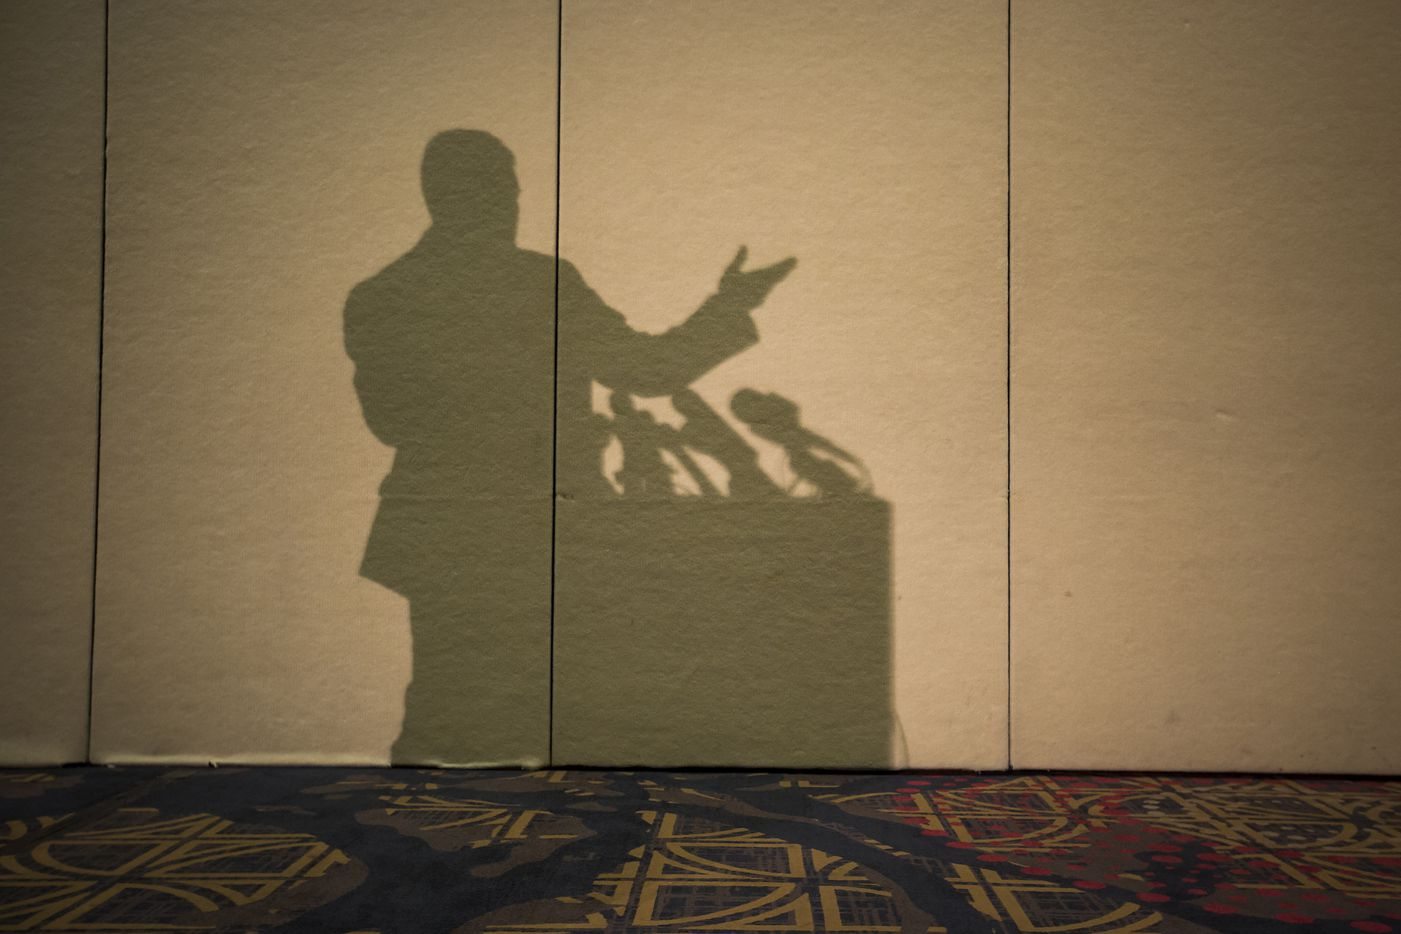 Richard Spencer casts a shadow on the wall as he addresses the media during a news conference before his speech.